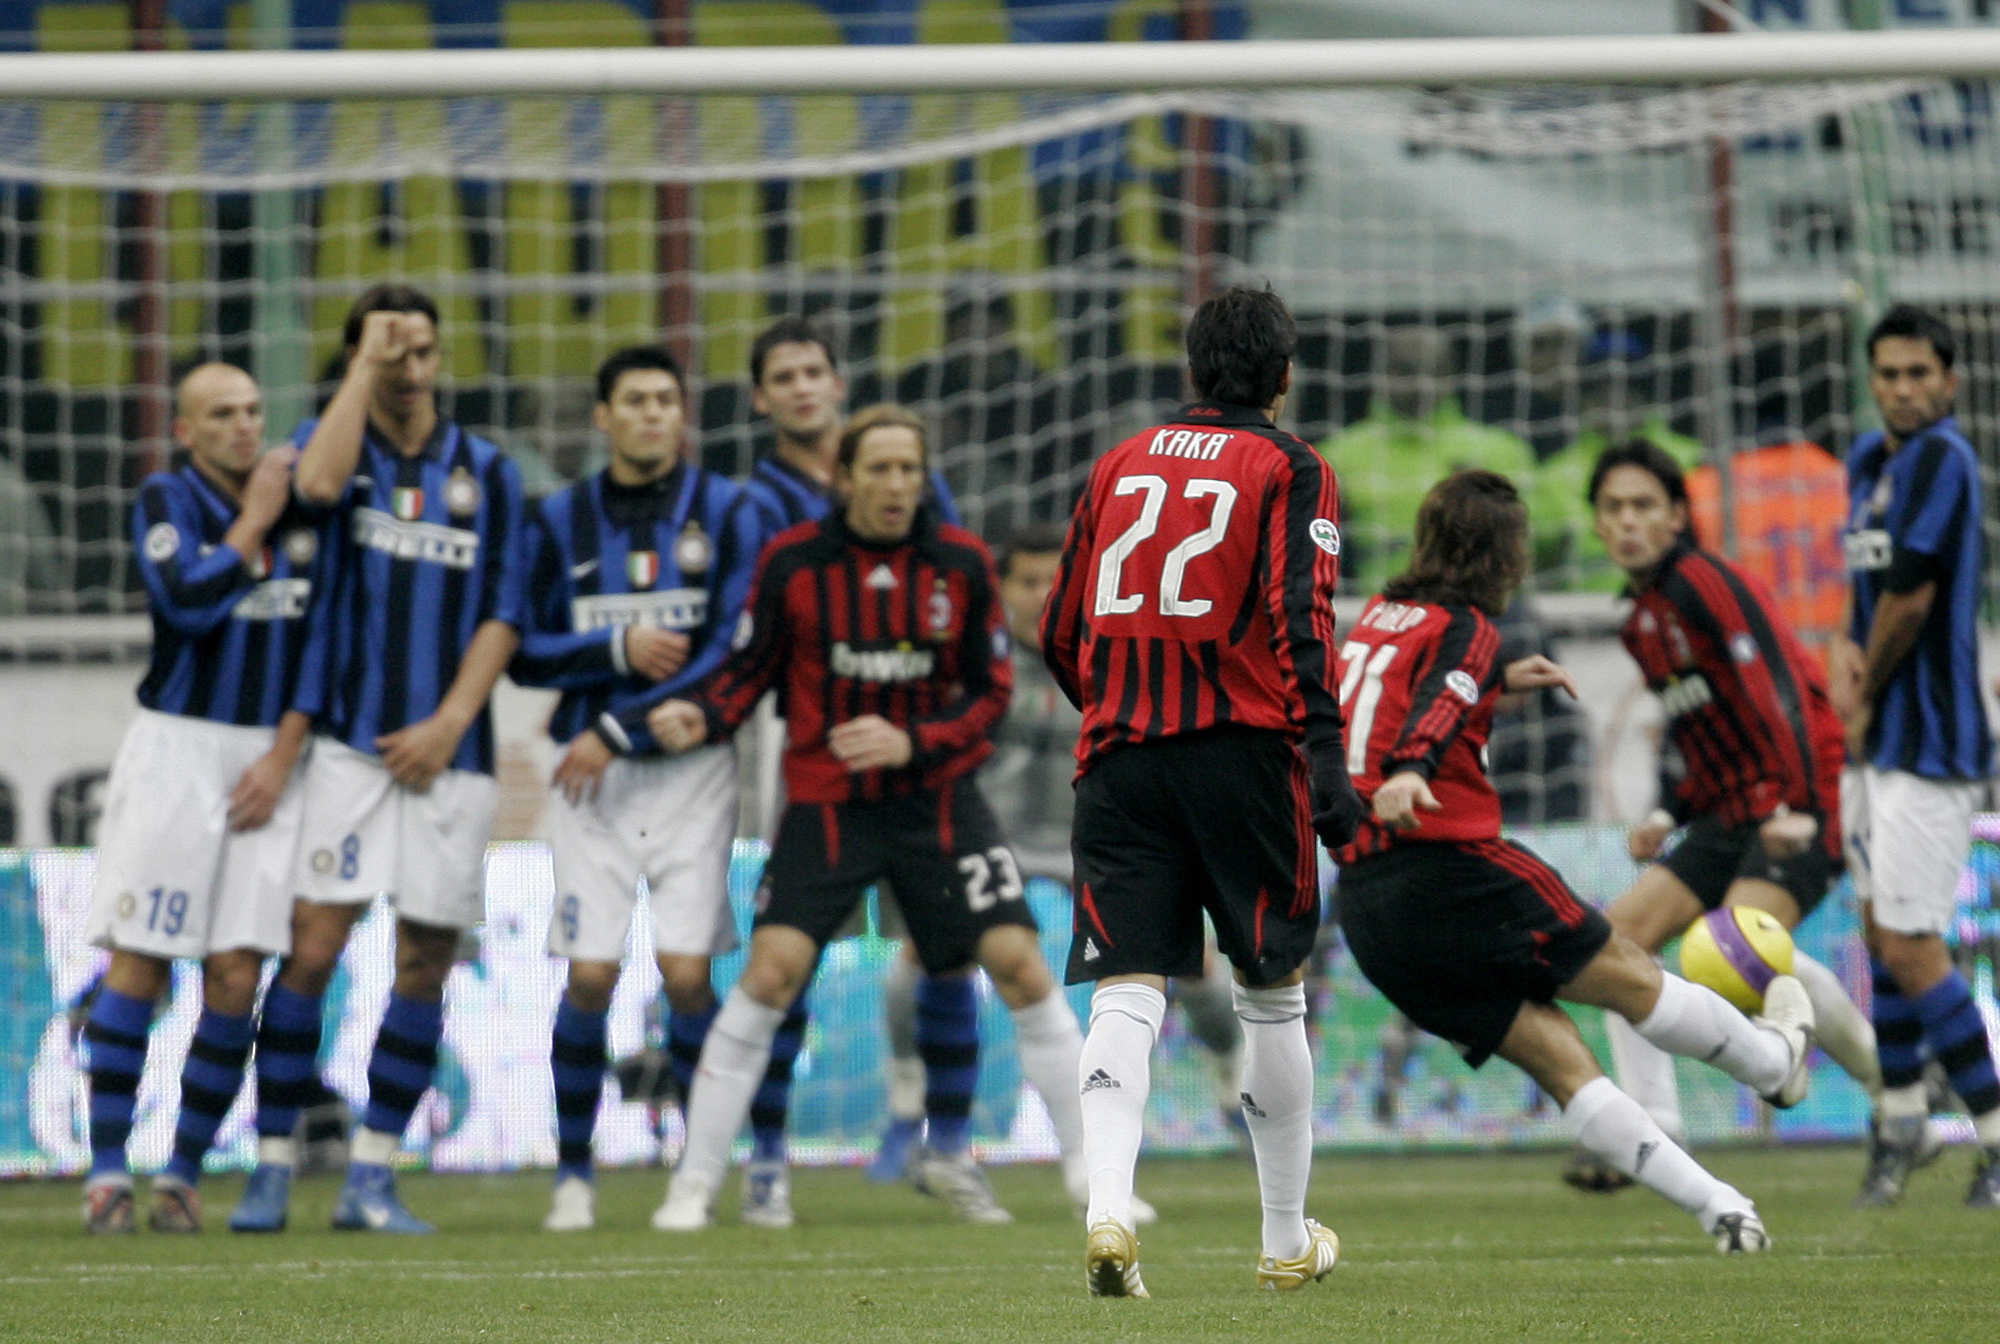 AC Milan midfielder Andrea Pirlo, right, scores from a free kick, during the Italian first division soccer match between Inter Milan and AC Milan at t...